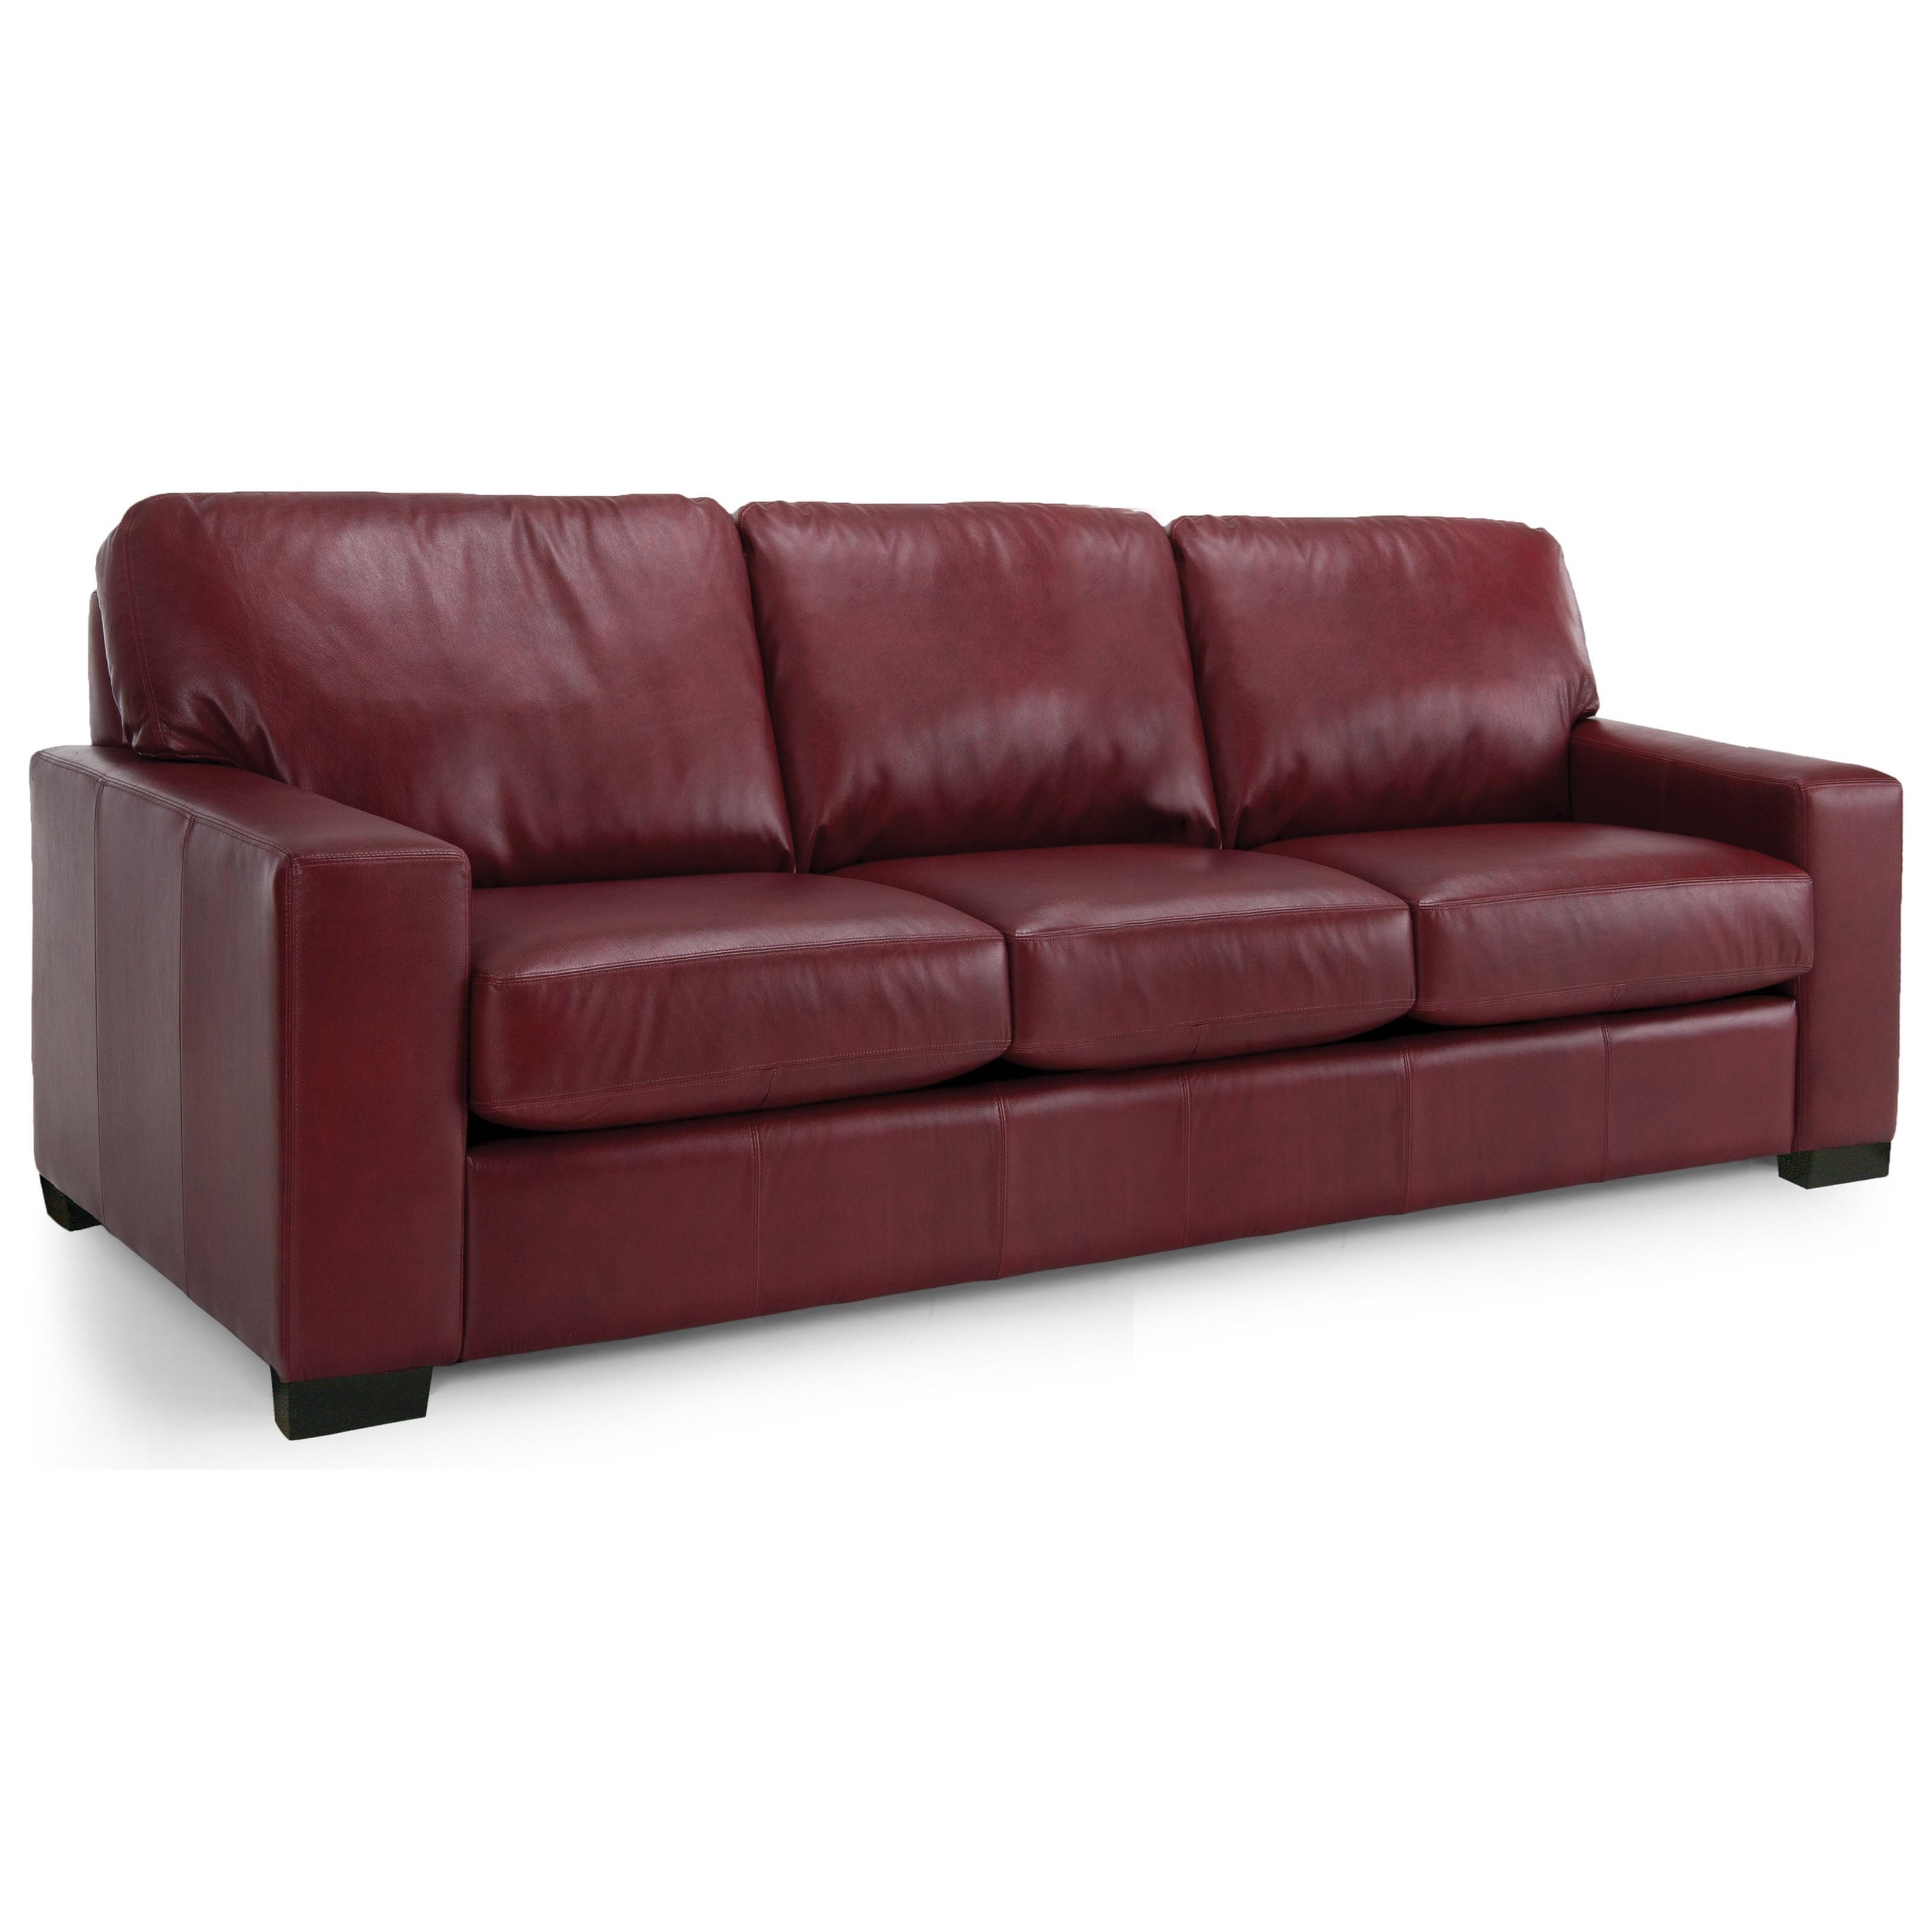 Alessandra Connections Sofa by Decor-Rest at Stoney Creek Furniture